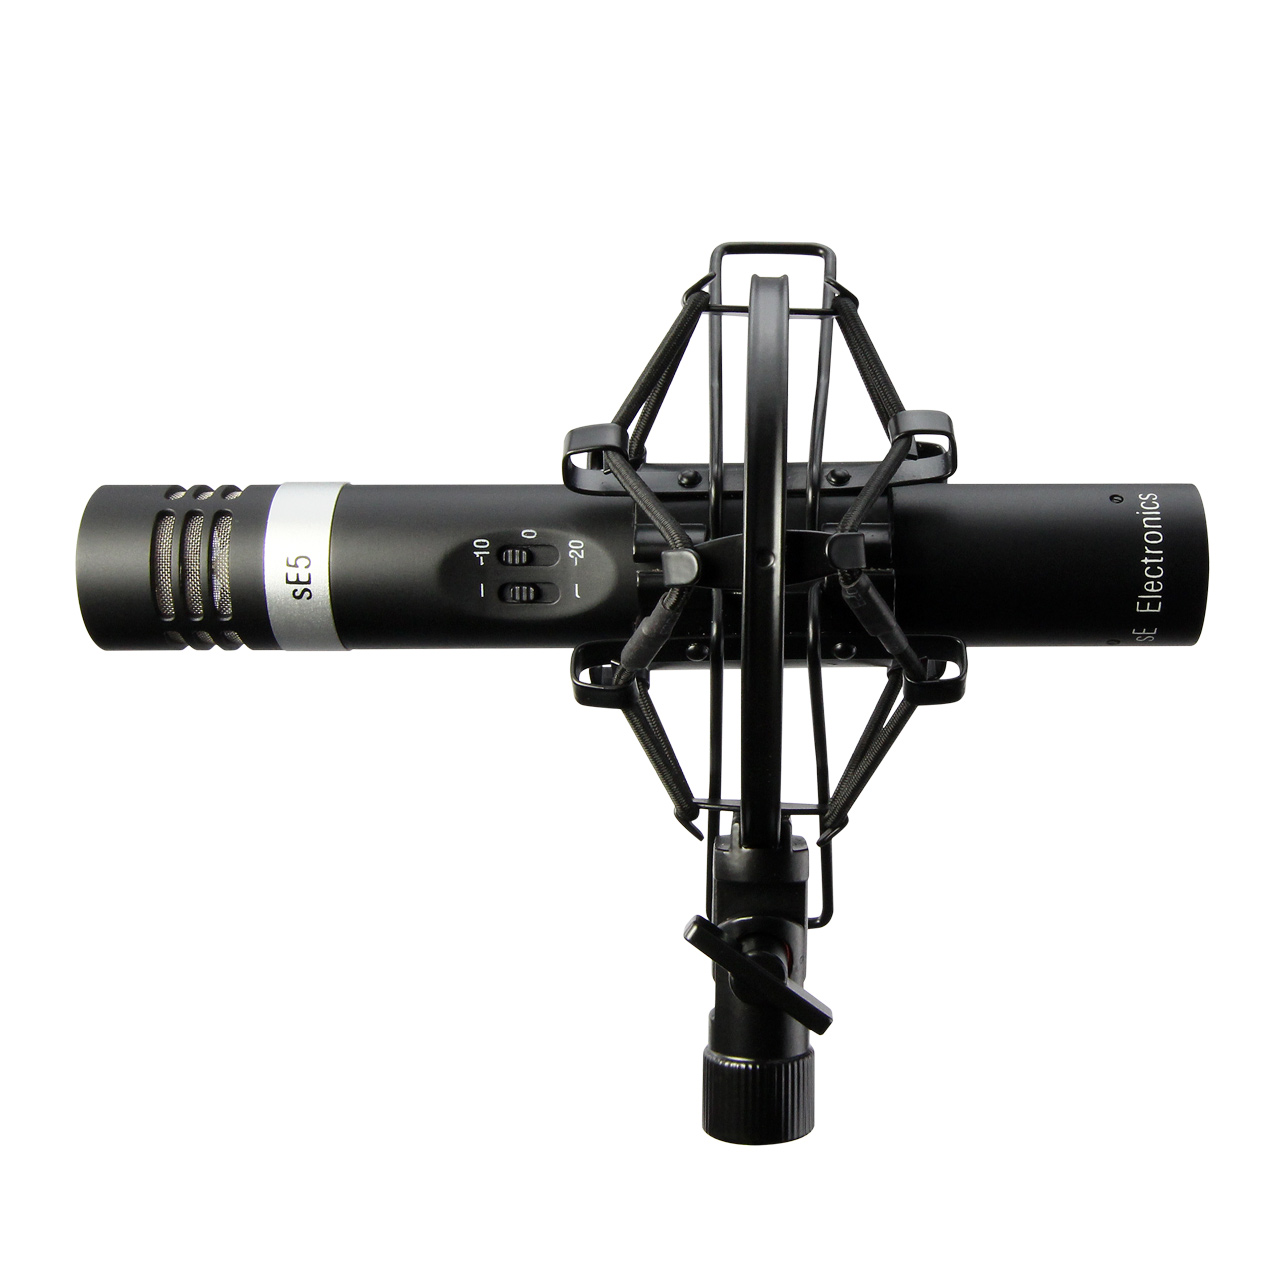 Se5+shockmount-back-1280x1280.jpg